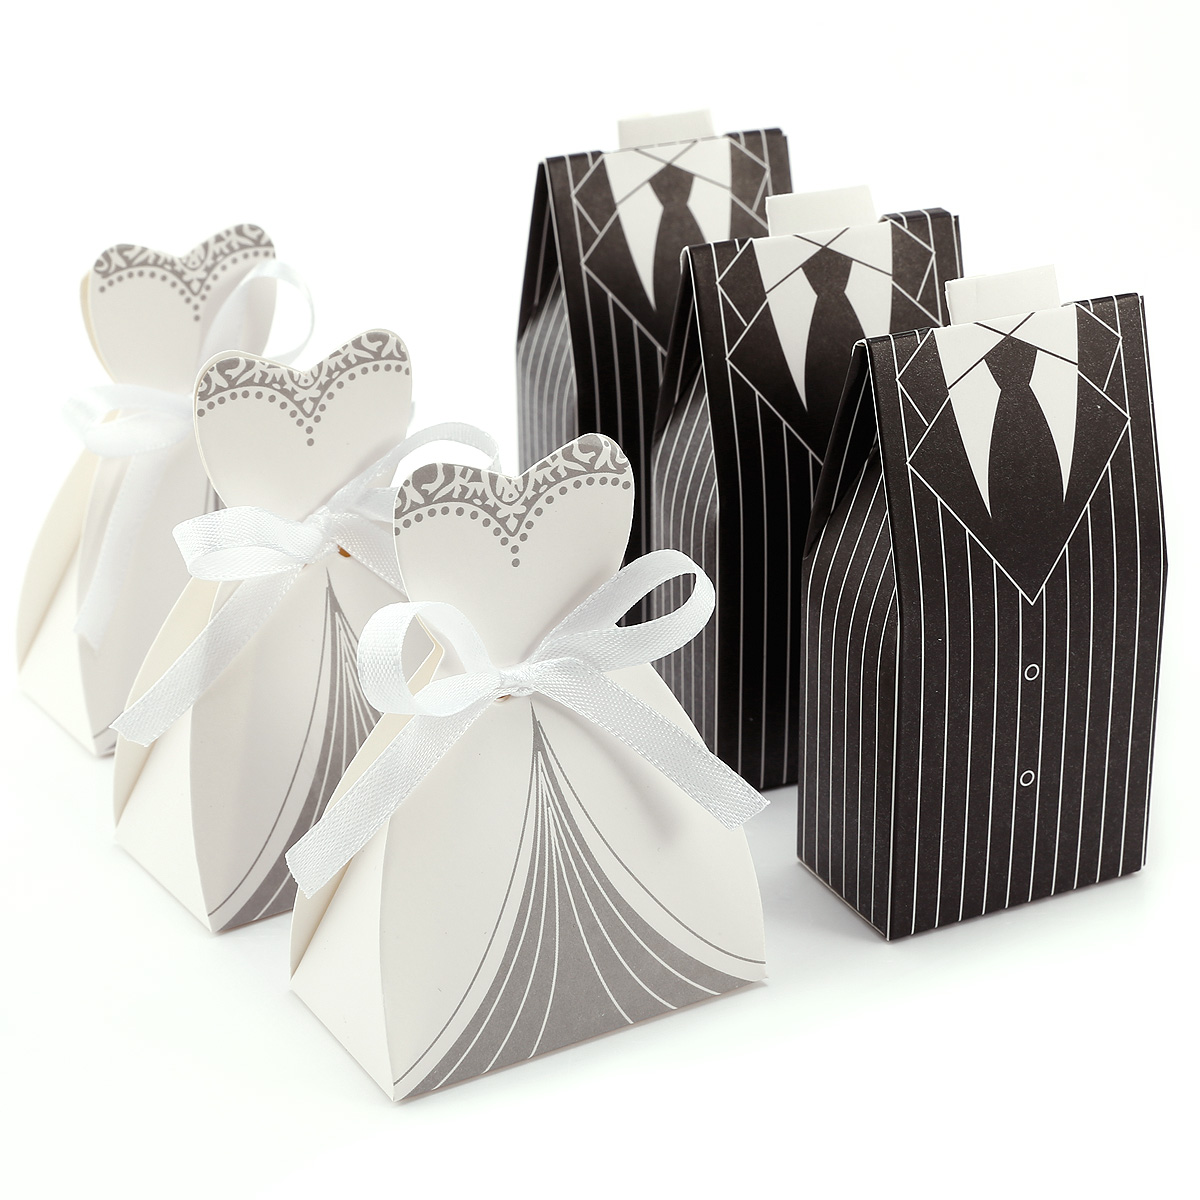 Wedding Dress And Tuxedo Favour Boxes - Wedding Guest Dresses